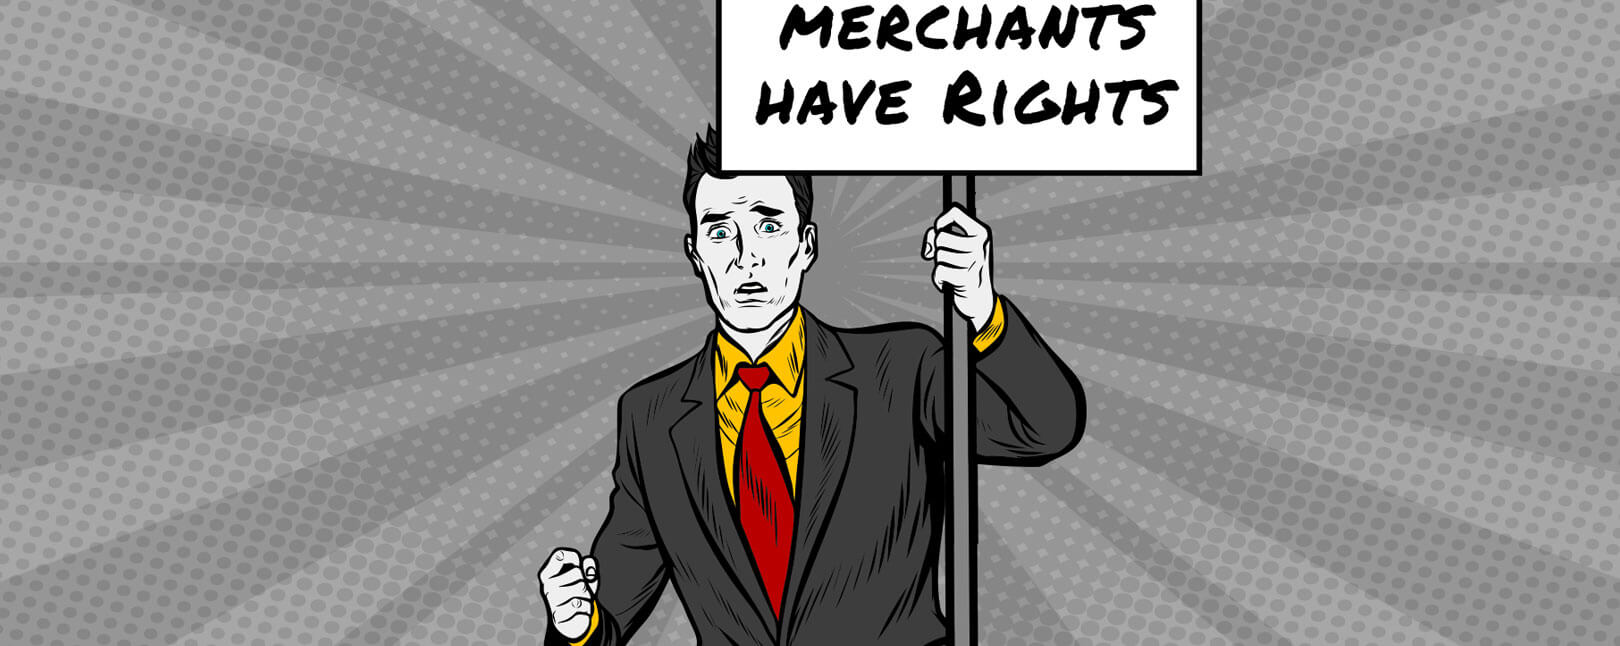 Chargeback Rights